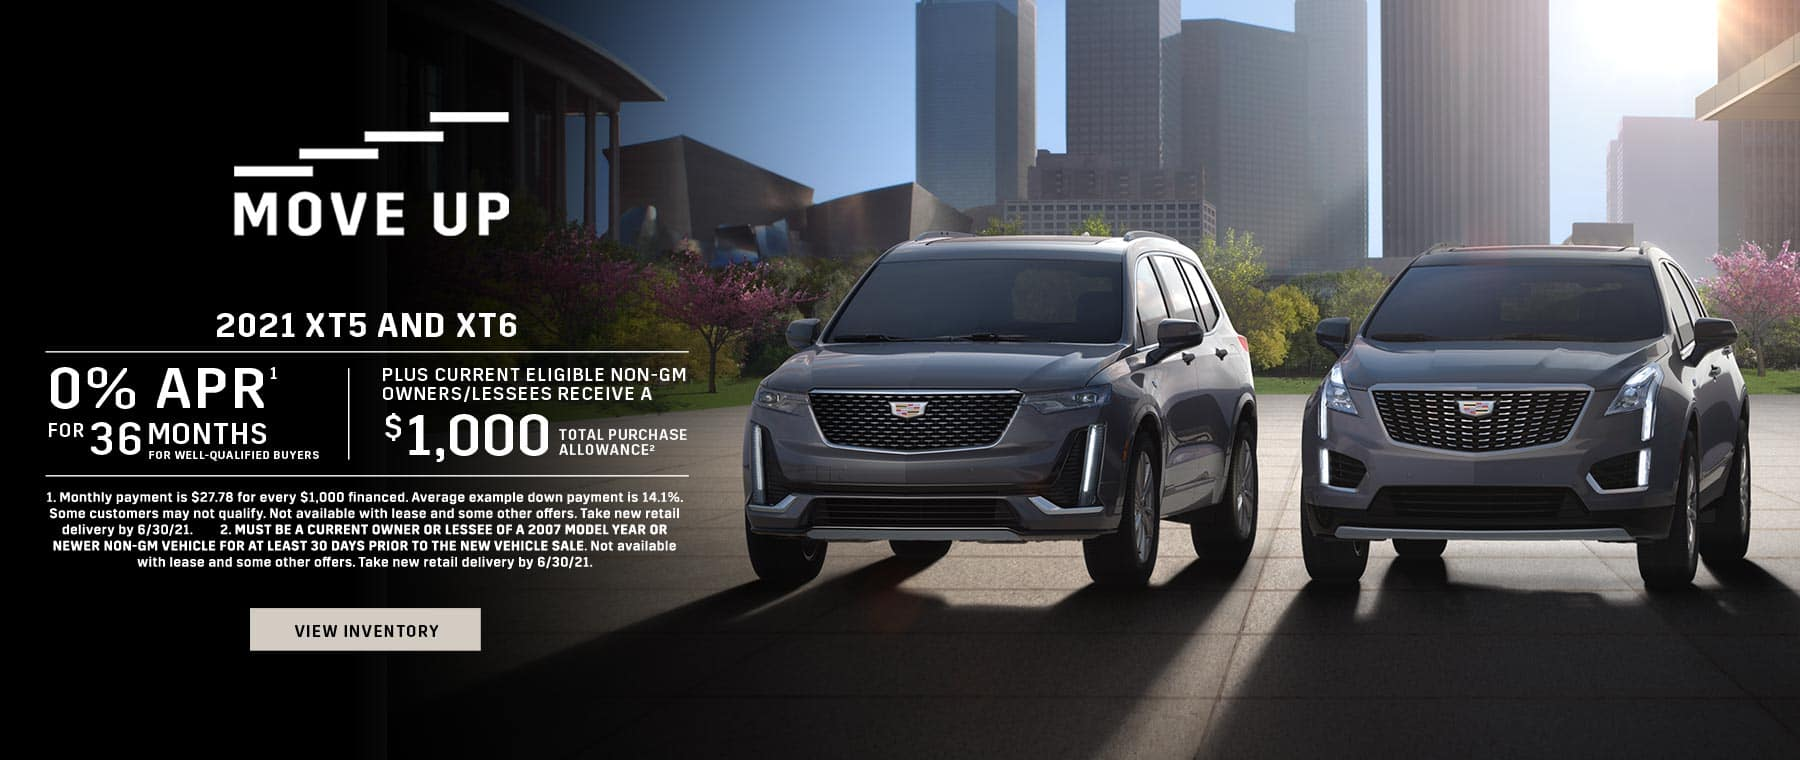 2021 Cadillac XT5 and XT6 offers